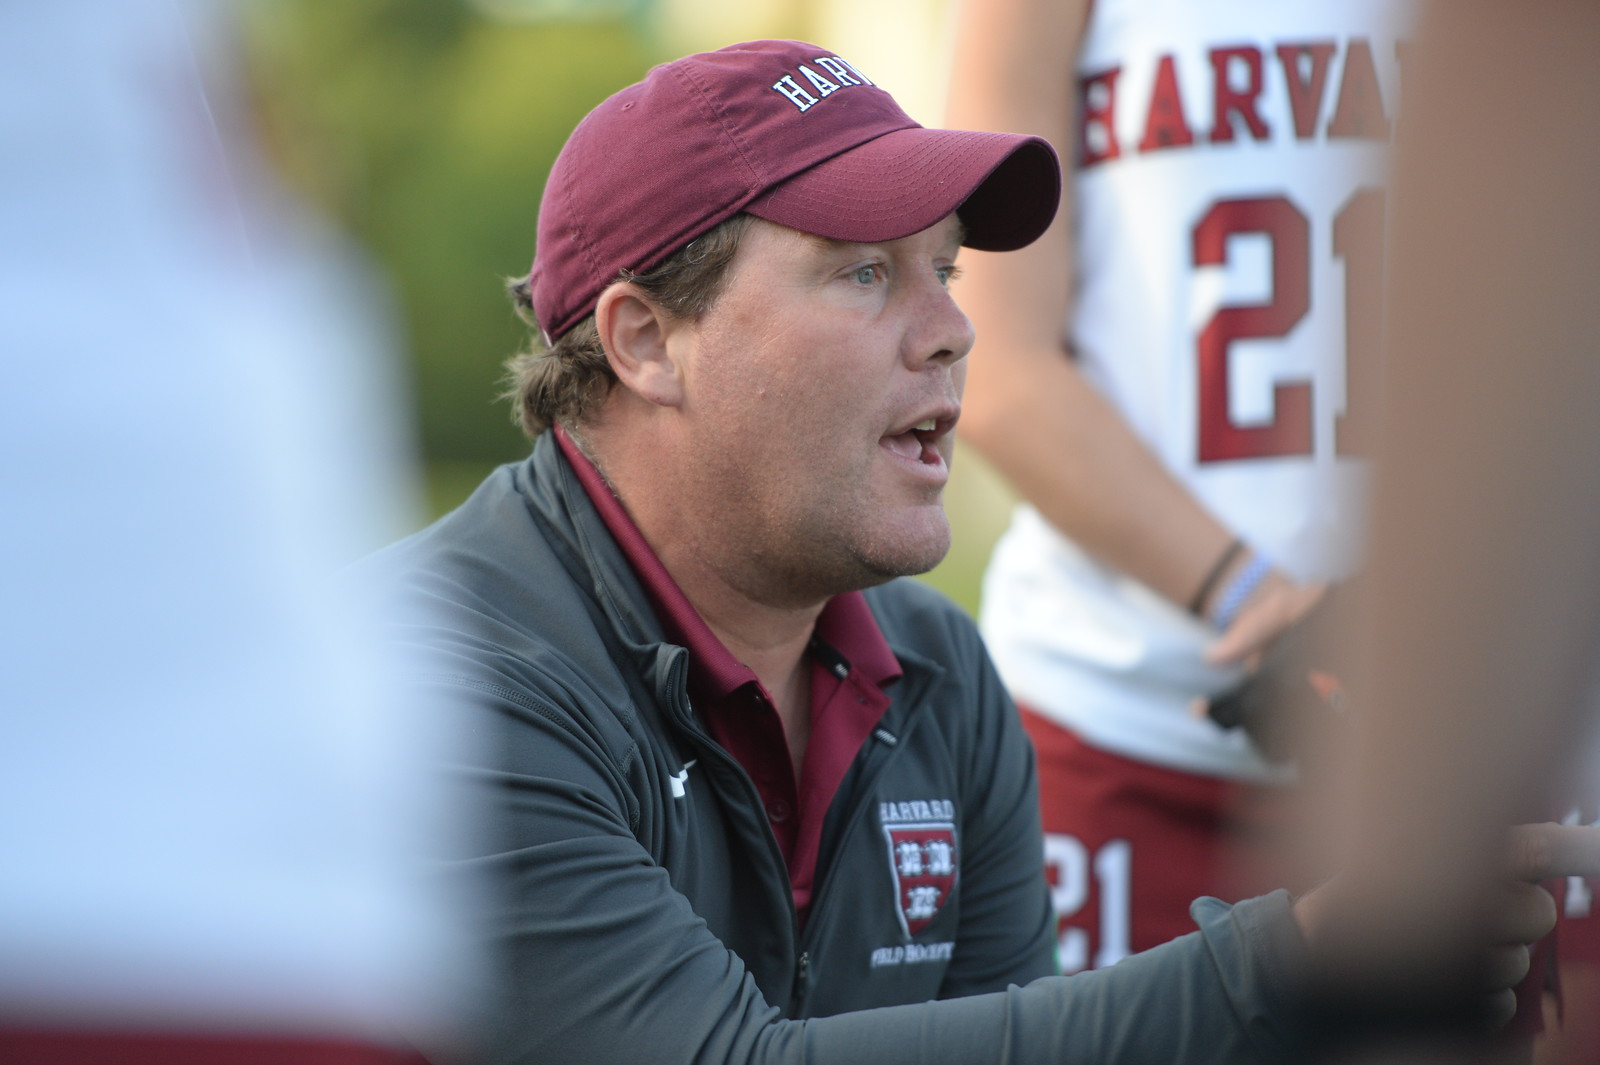 Harvard field hockey moved into the Top 10 national rankings this season, a meteoric rise for a program largely in the periphery in years past.